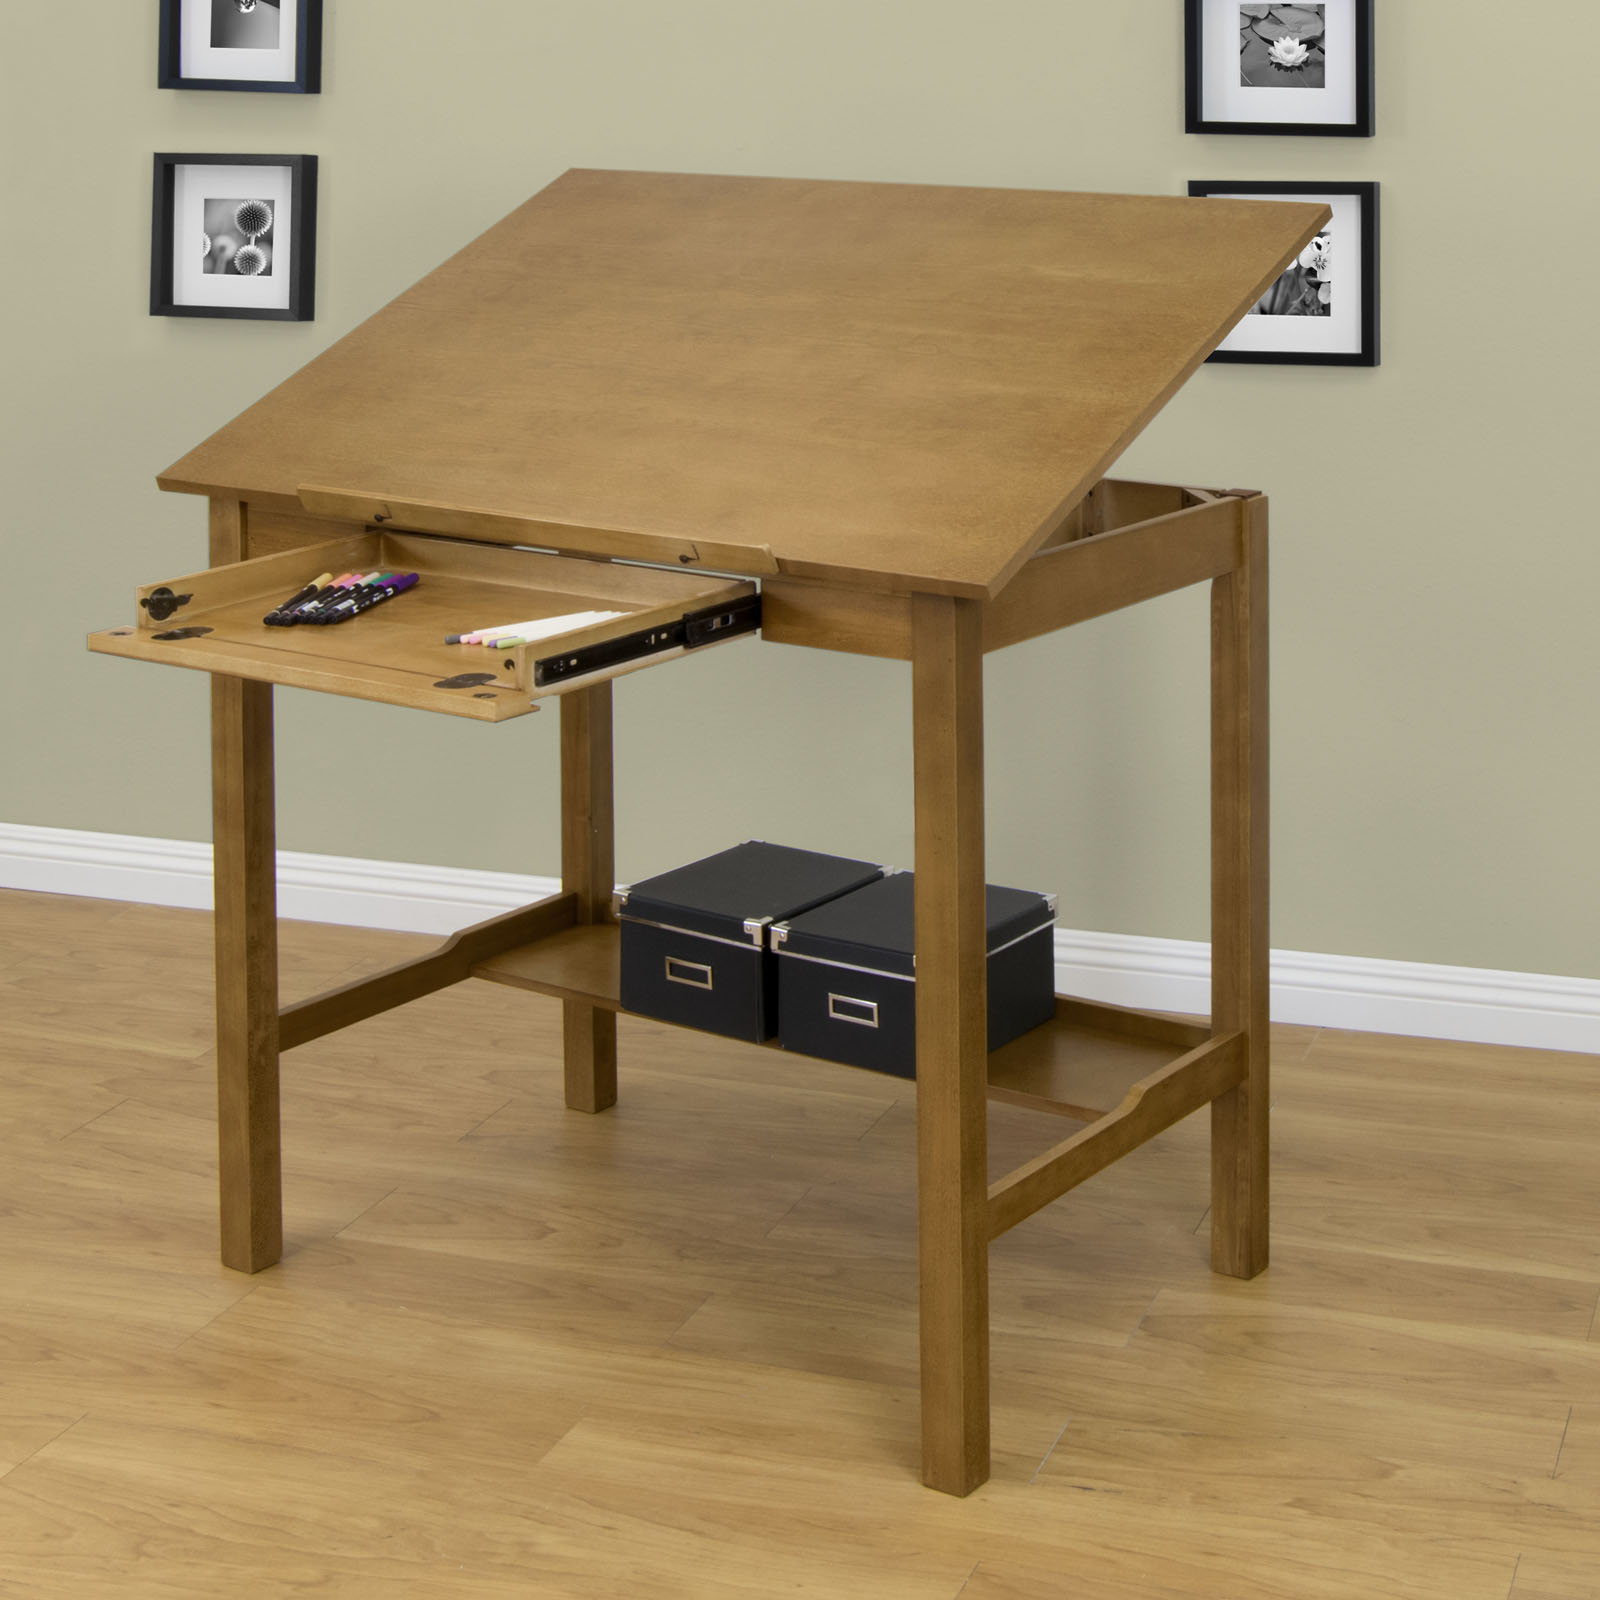 Drafting Table Design Americana Ii Wood Drafting Desk With 42 X 30 Adjustable